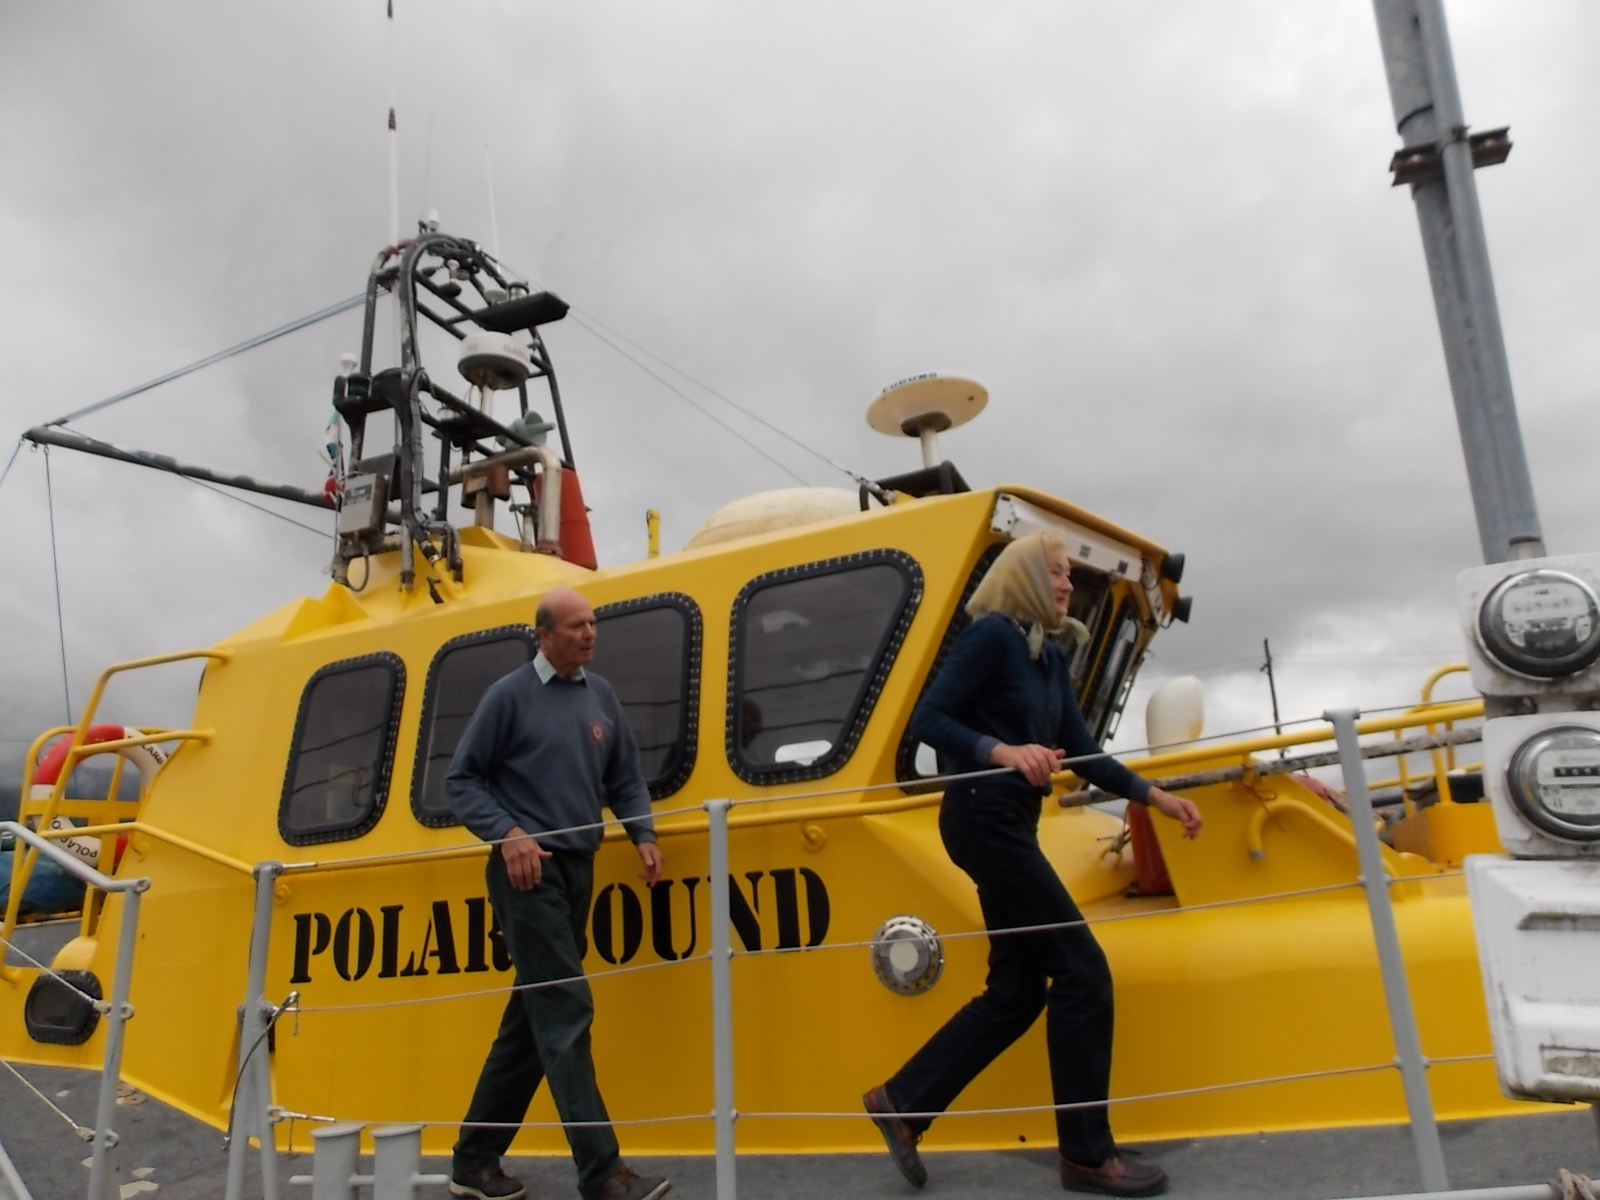 Northwest passage voyagers complete journey back to UK